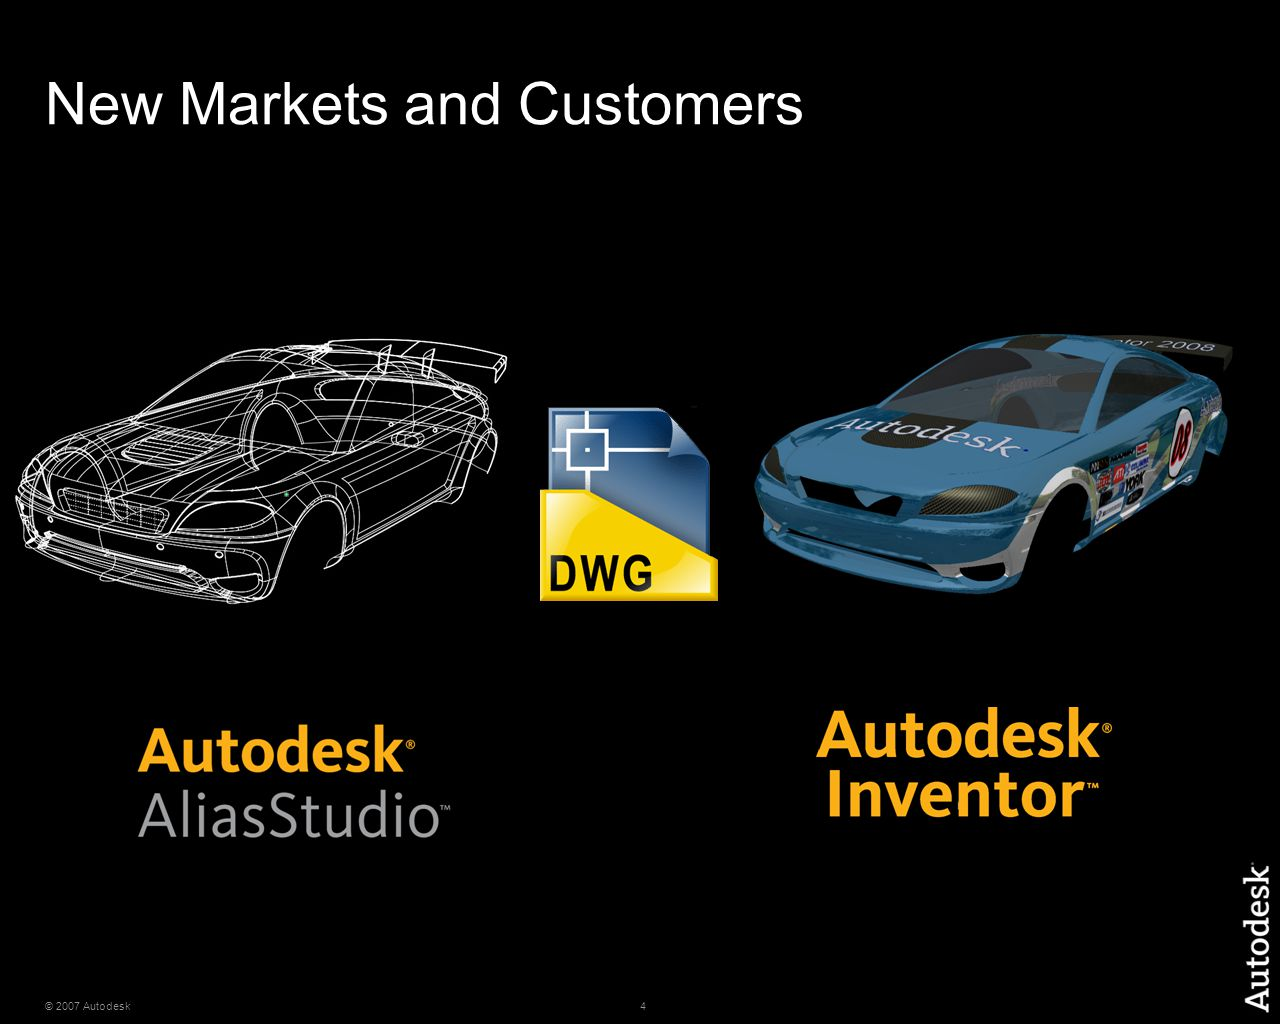 15© 2007 Autodesk The Industry's Fastest Growth % 3 Year CAGR 0 5 10 15 20 25 30 Autodesk PTC Dassault UGS